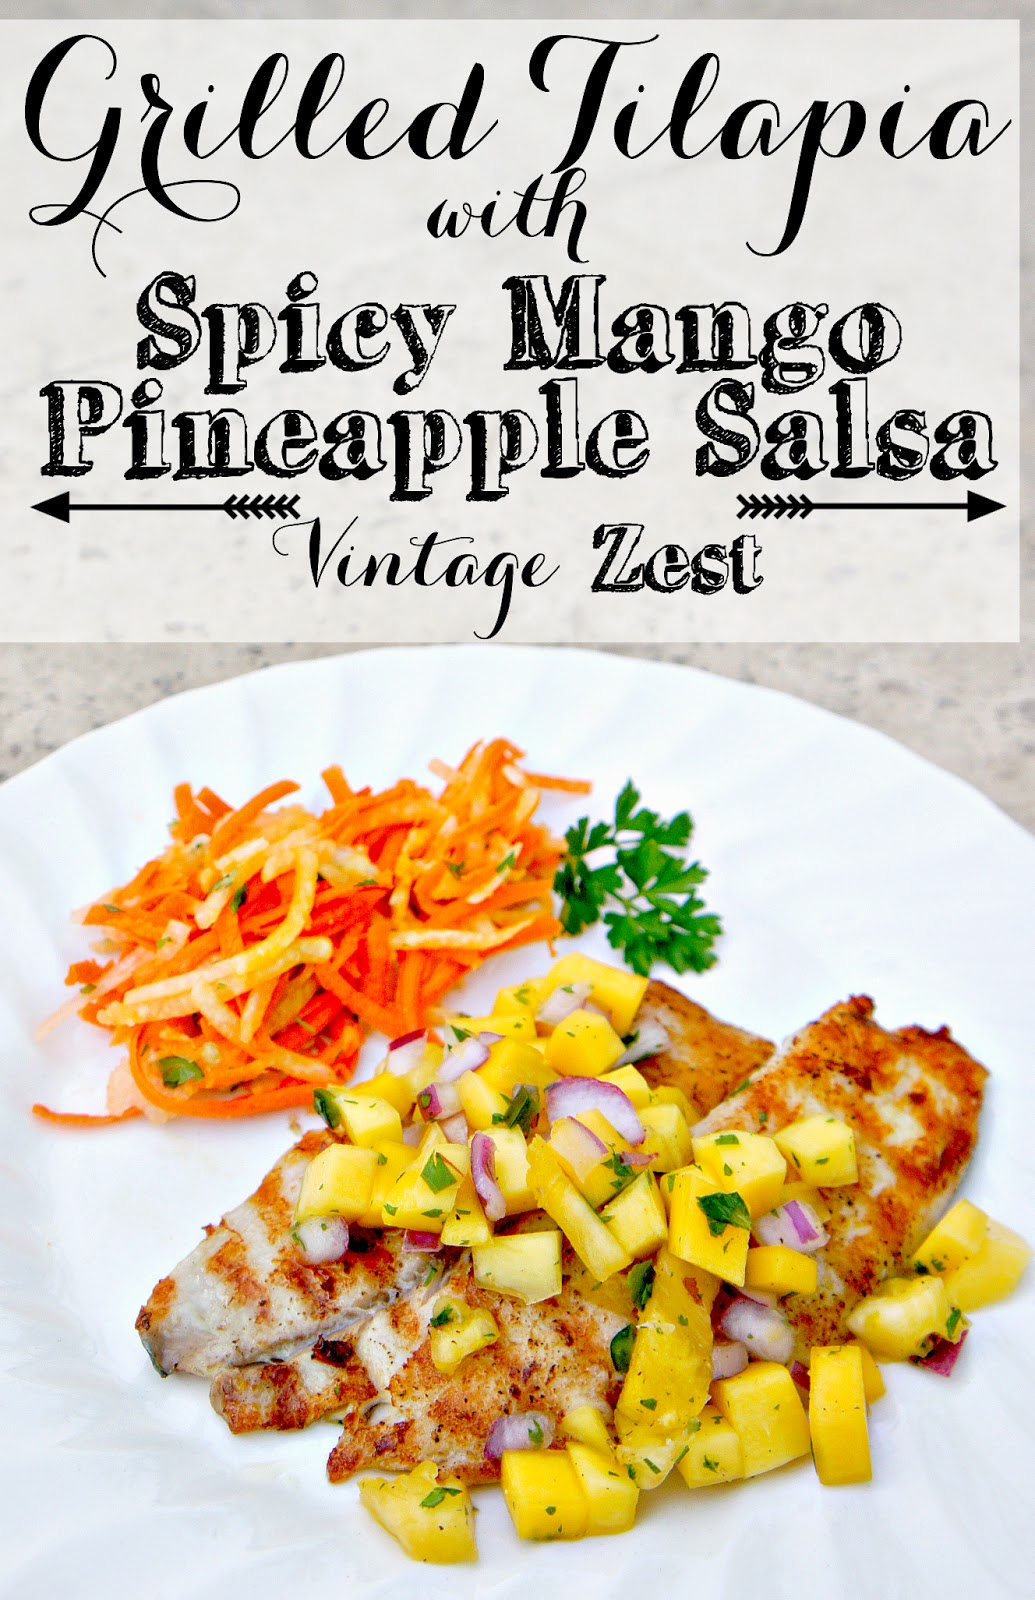 Grilled Tilapia with Spicy Mango Pineapple Salsa by Vintage Zest